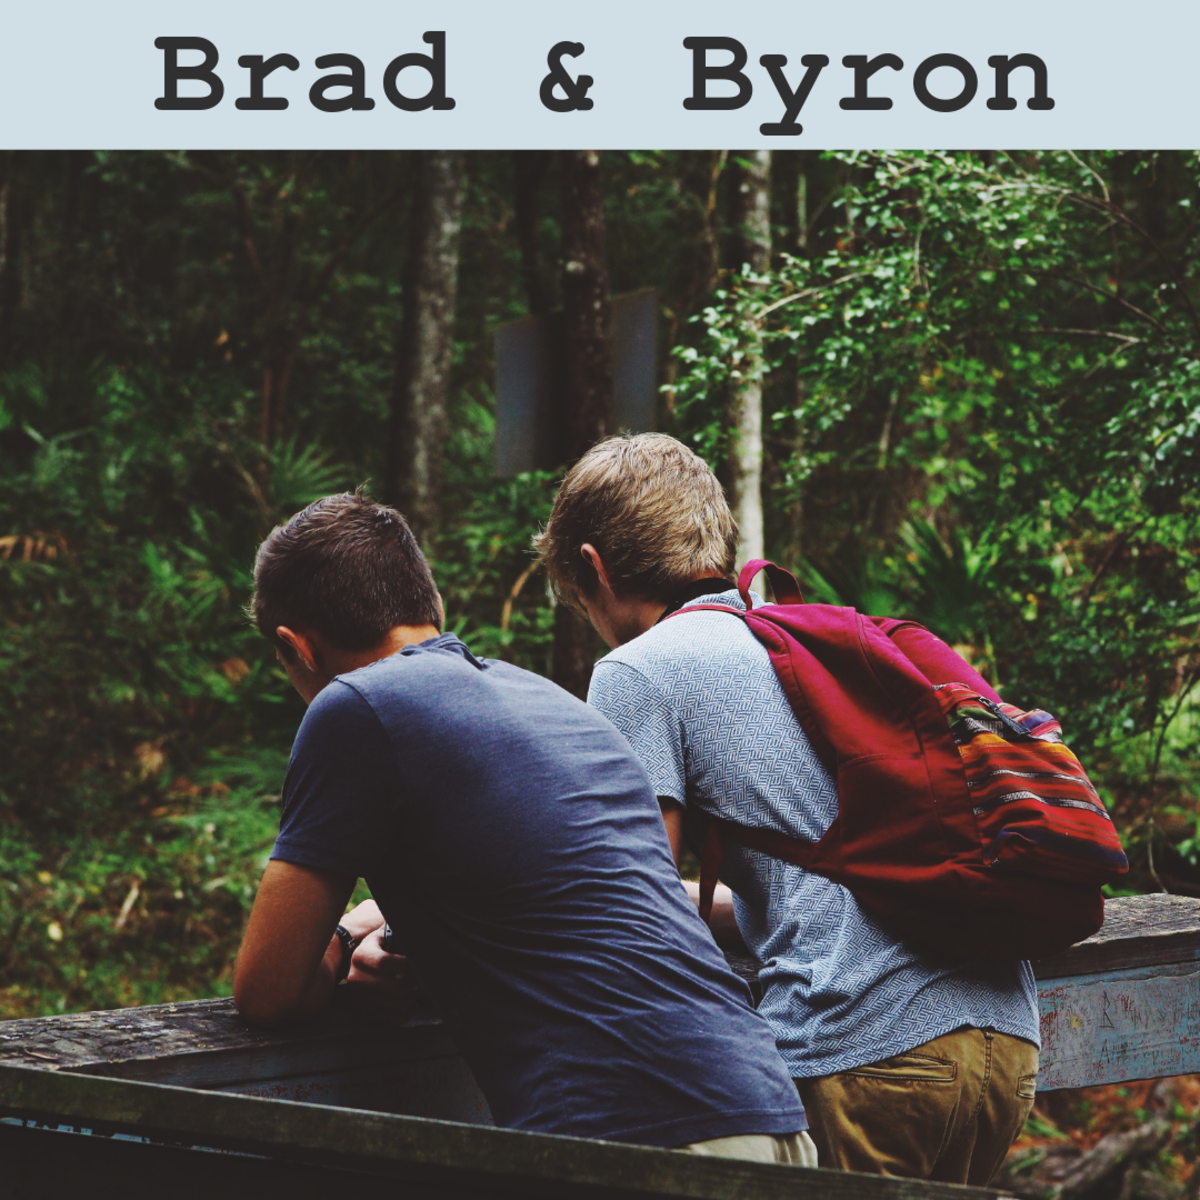 Brad and Byron